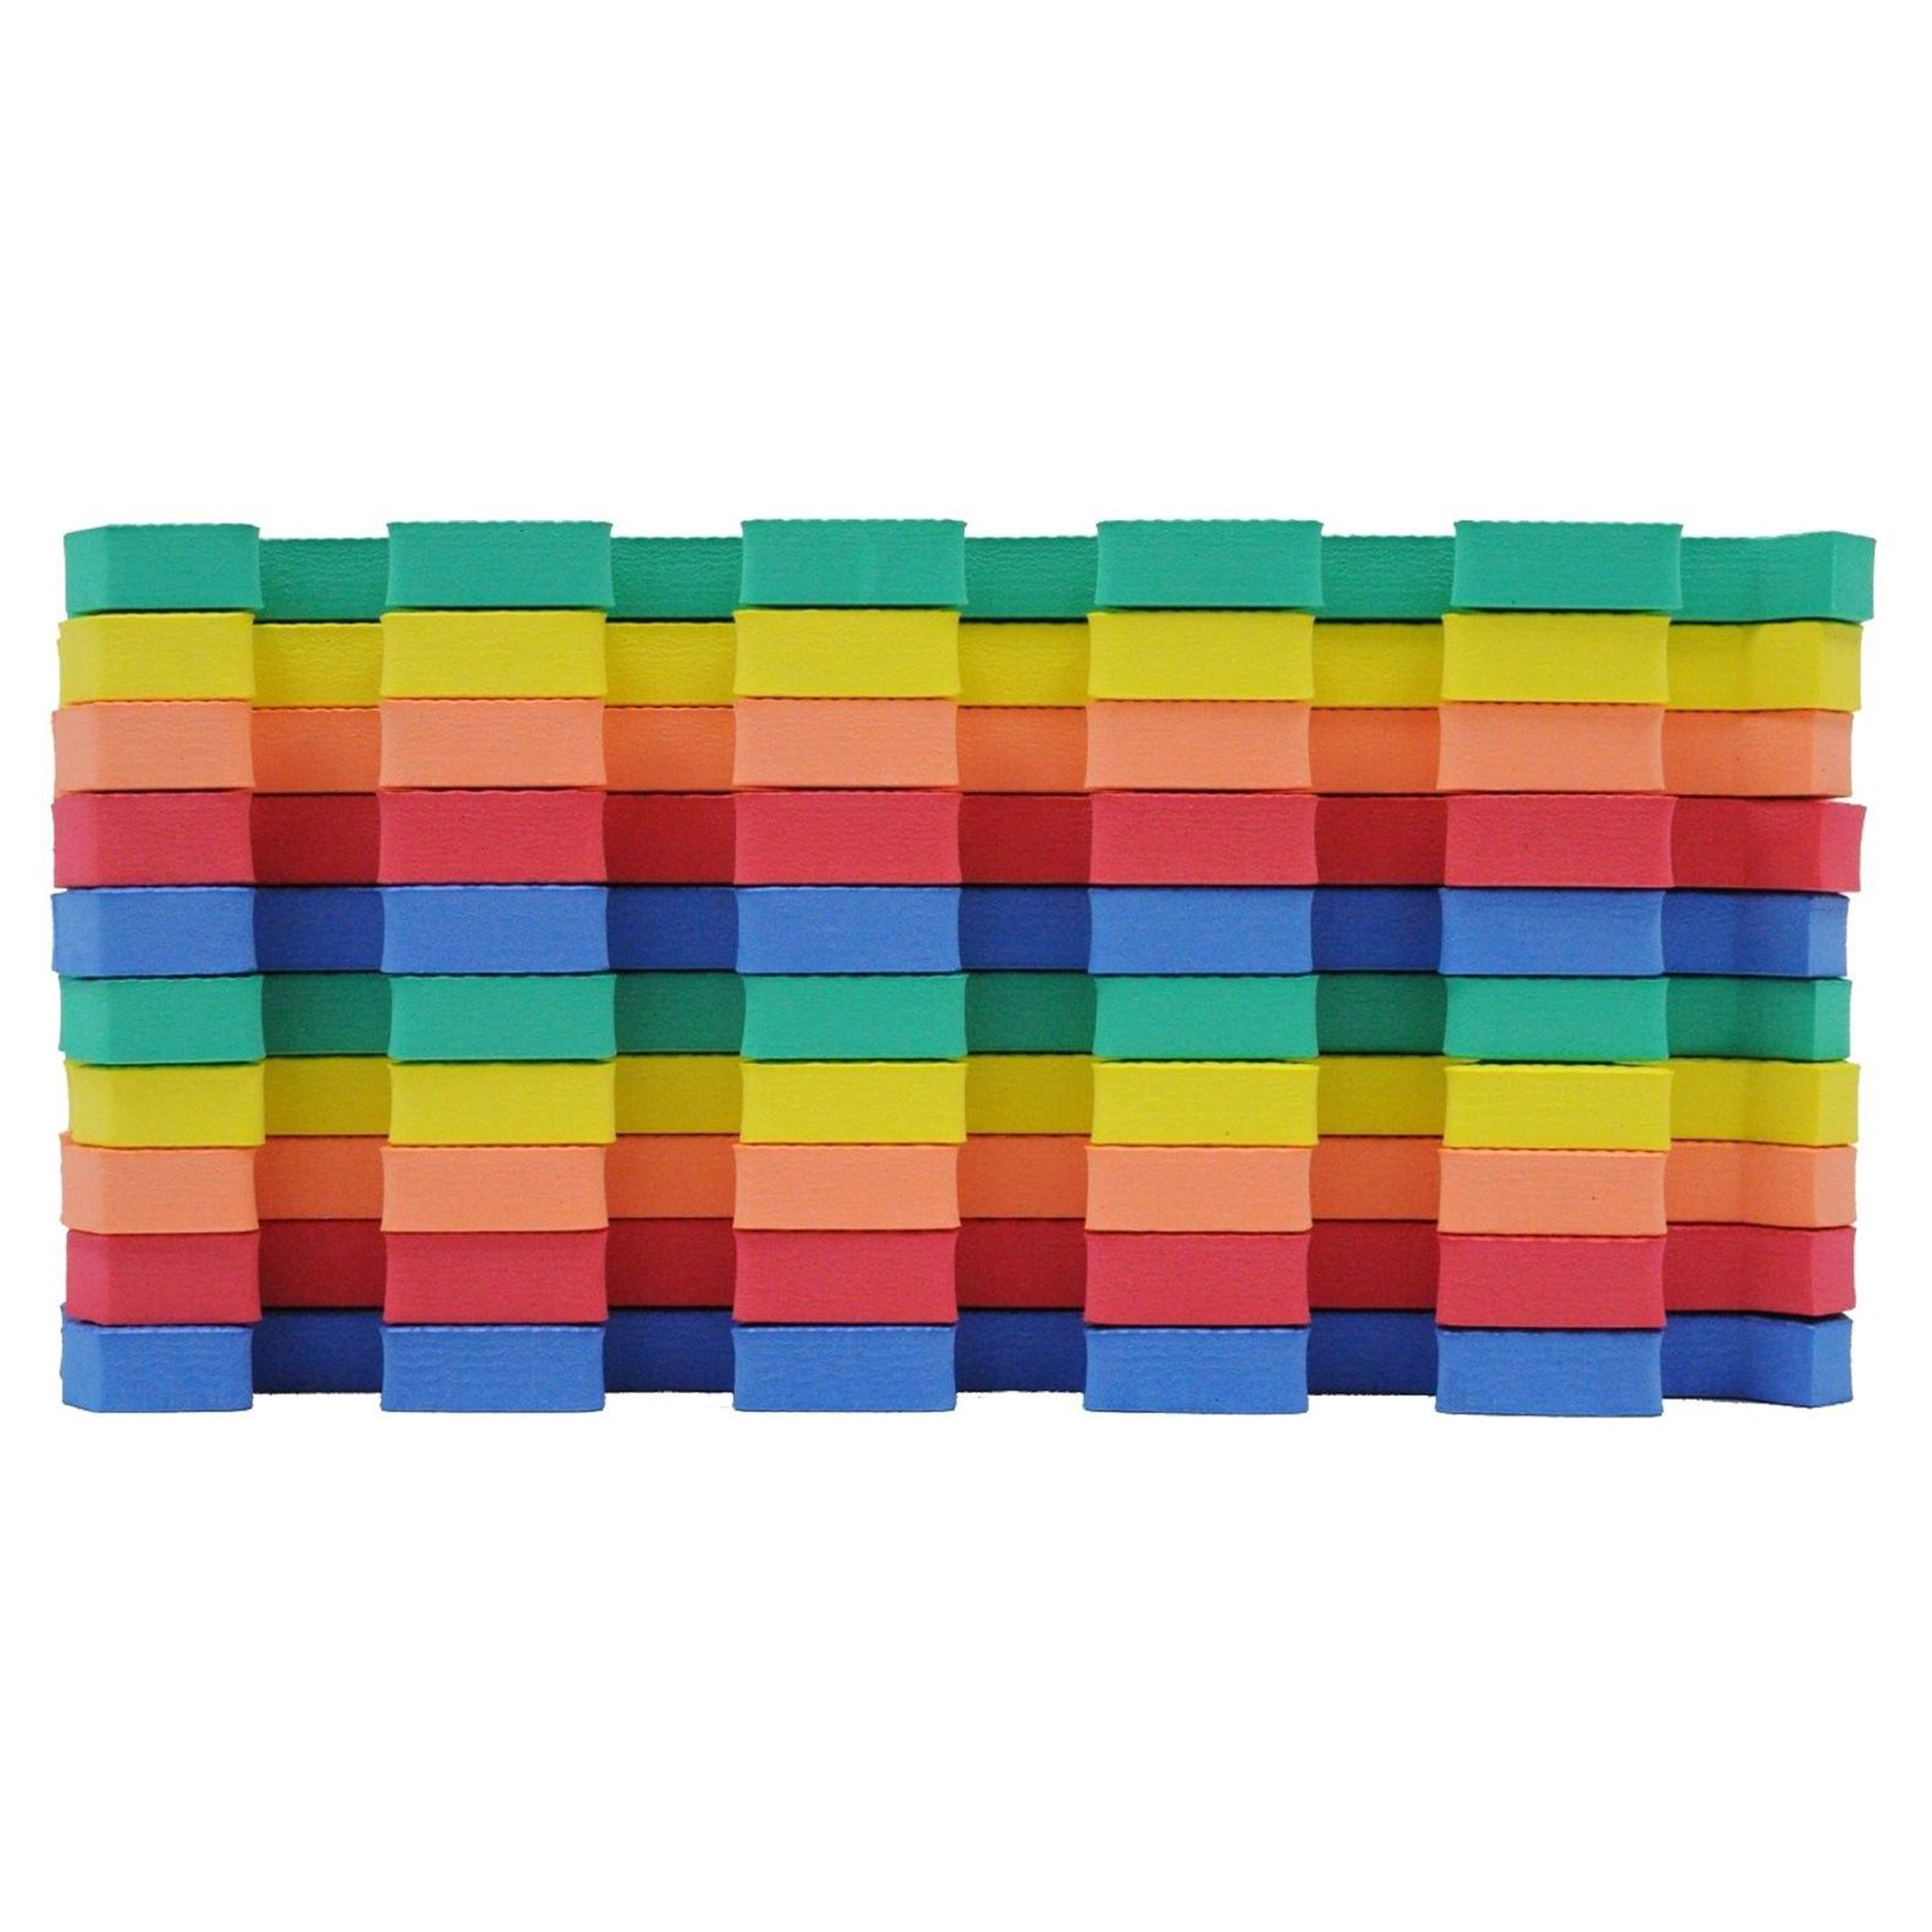 rainbow interlocking eva foam baby mat playmat children crawling  - rainbow interlocking eva foam baby mat playmat children crawling playingfloor  pcs  walmartcom